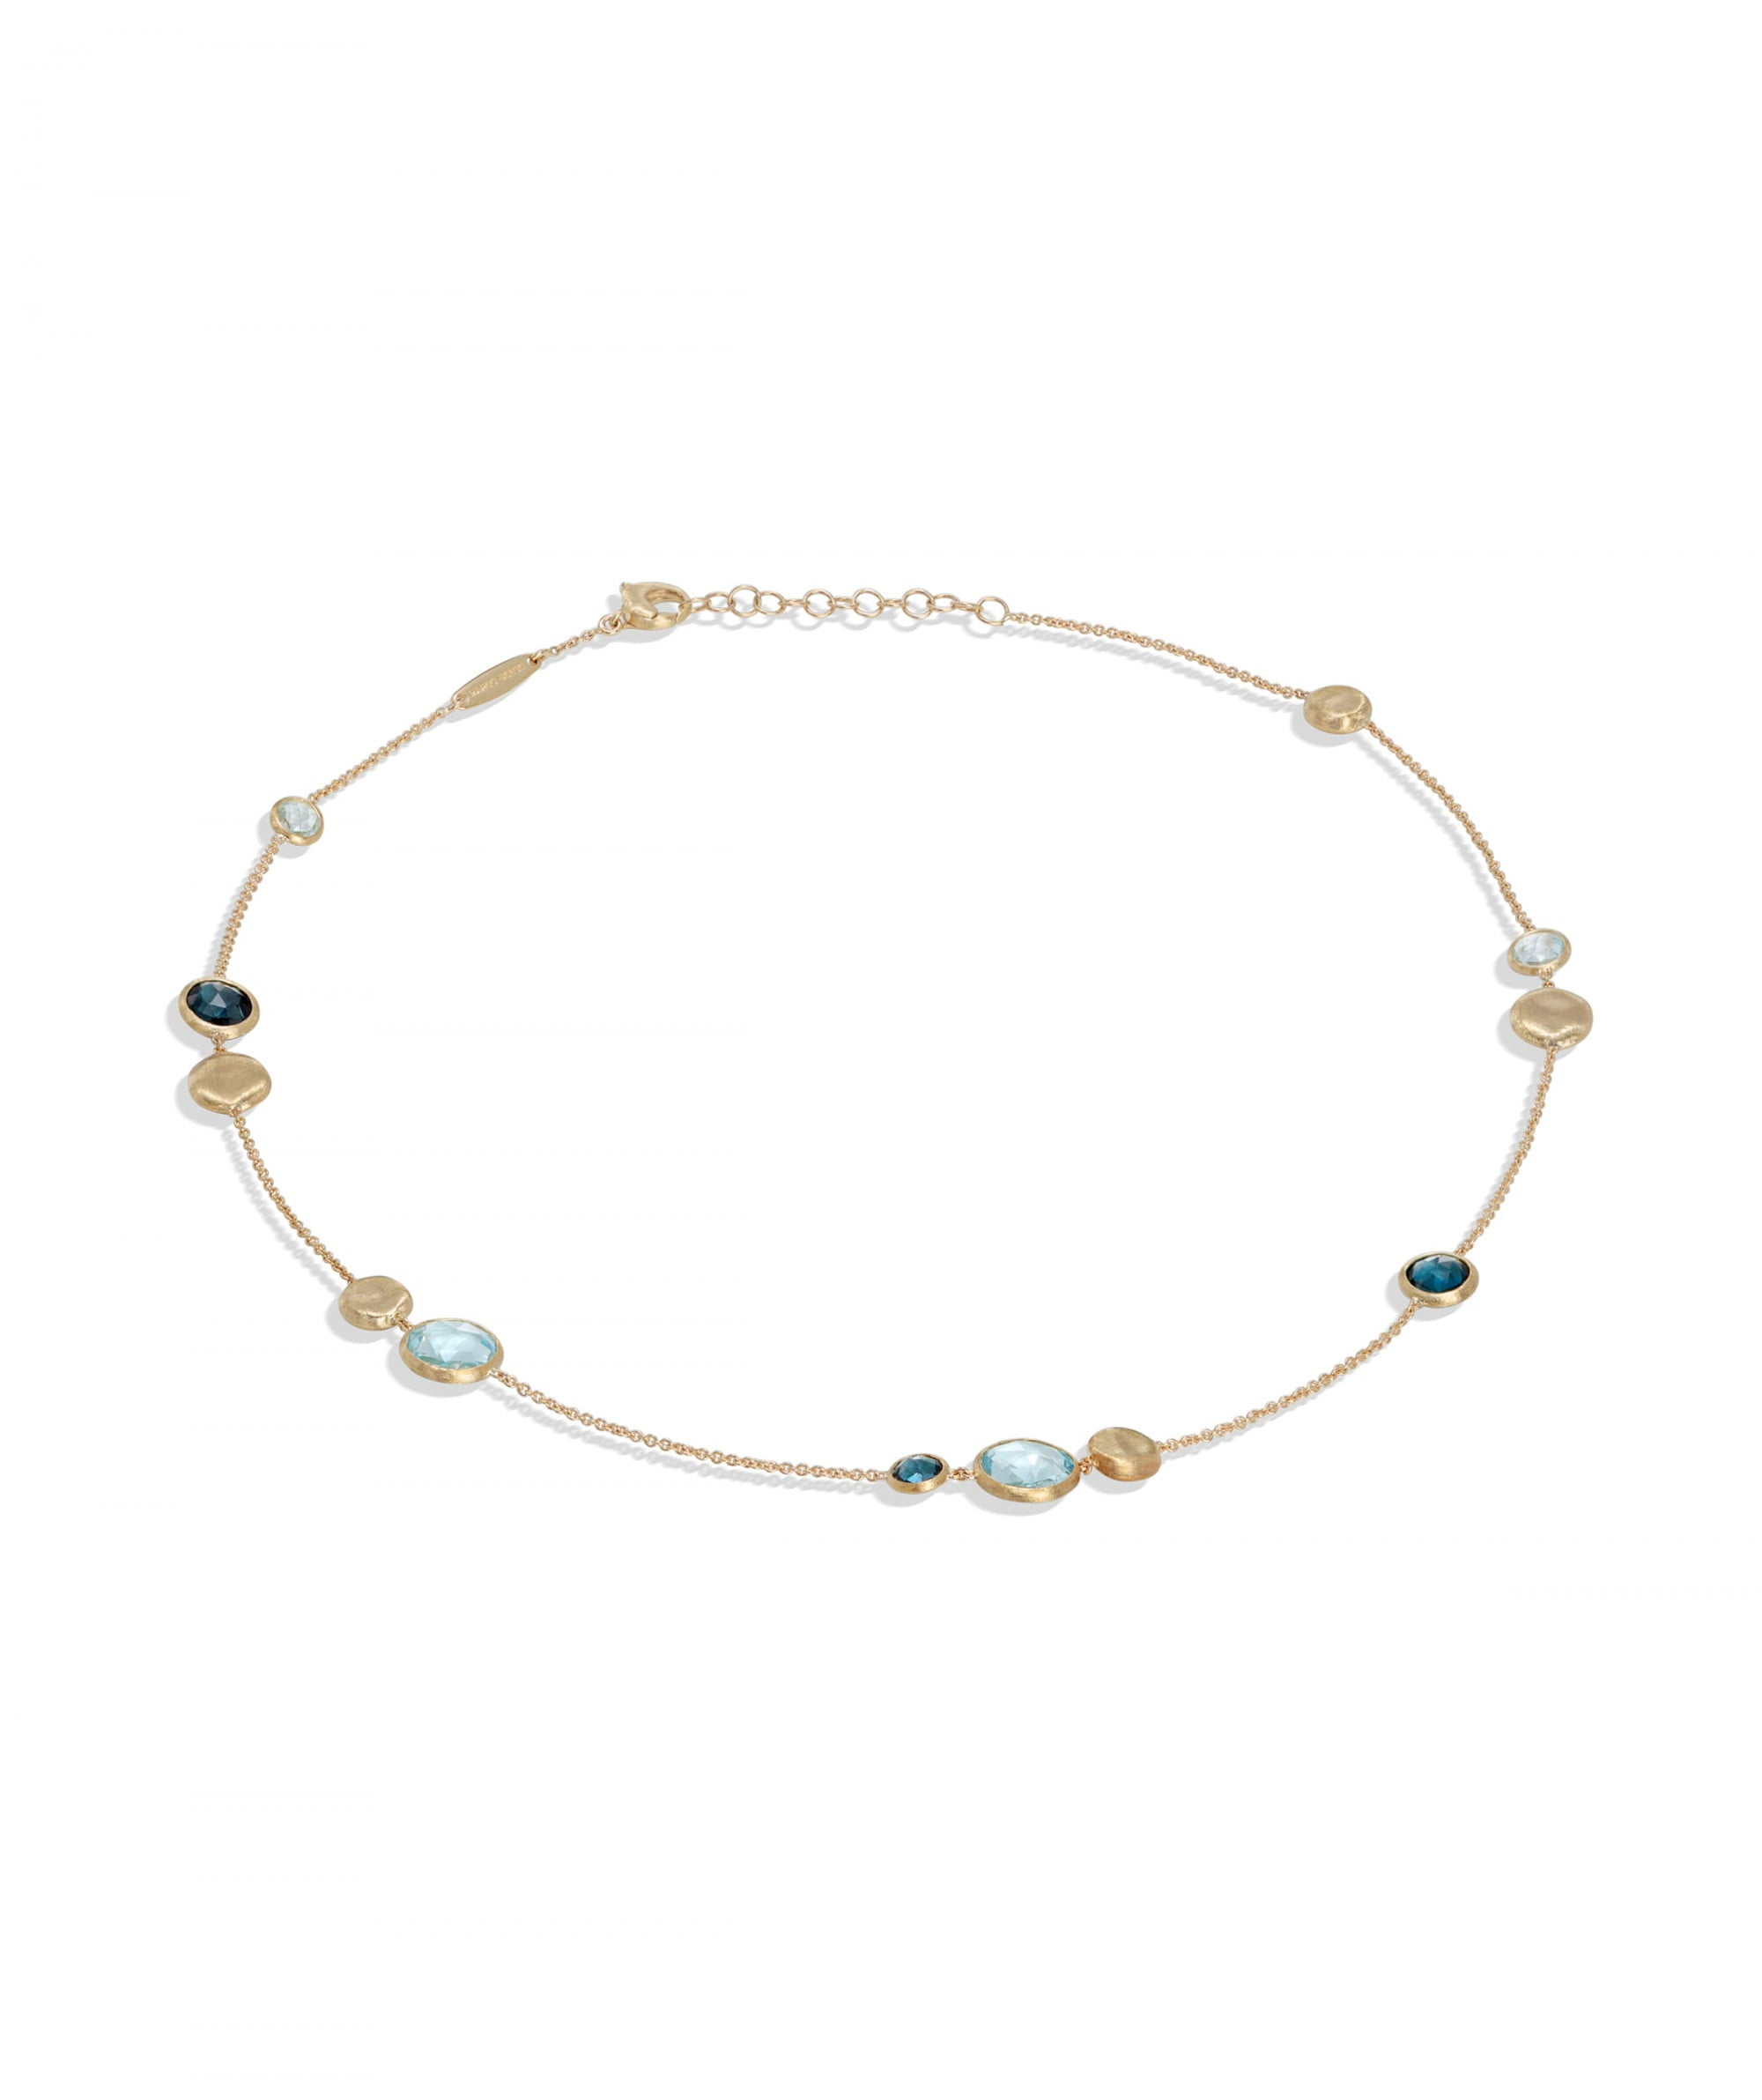 Jaipur Colour Necklace in 18k Yellow Gold with Gemstones Mixed Blues Short - Orsini Jewellers NZ